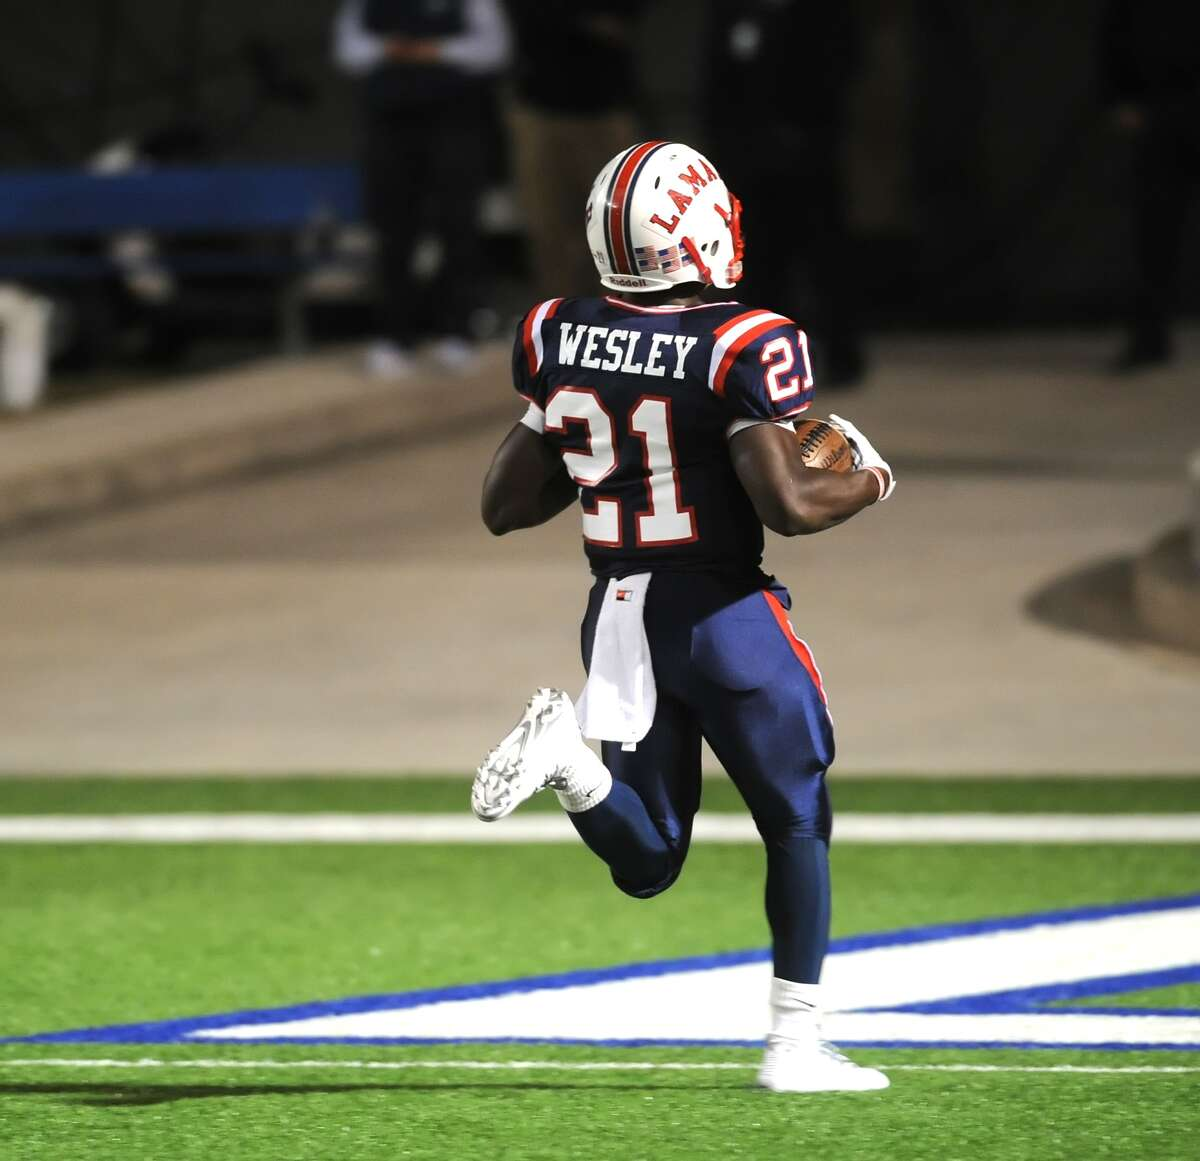 Lamar running back Ronnie Wesley (21) broke away for a 60 yard touchdown run on the teams first offensive play of the game during Lamar's win over Westside Nov. 7 at Delmar Stadium.